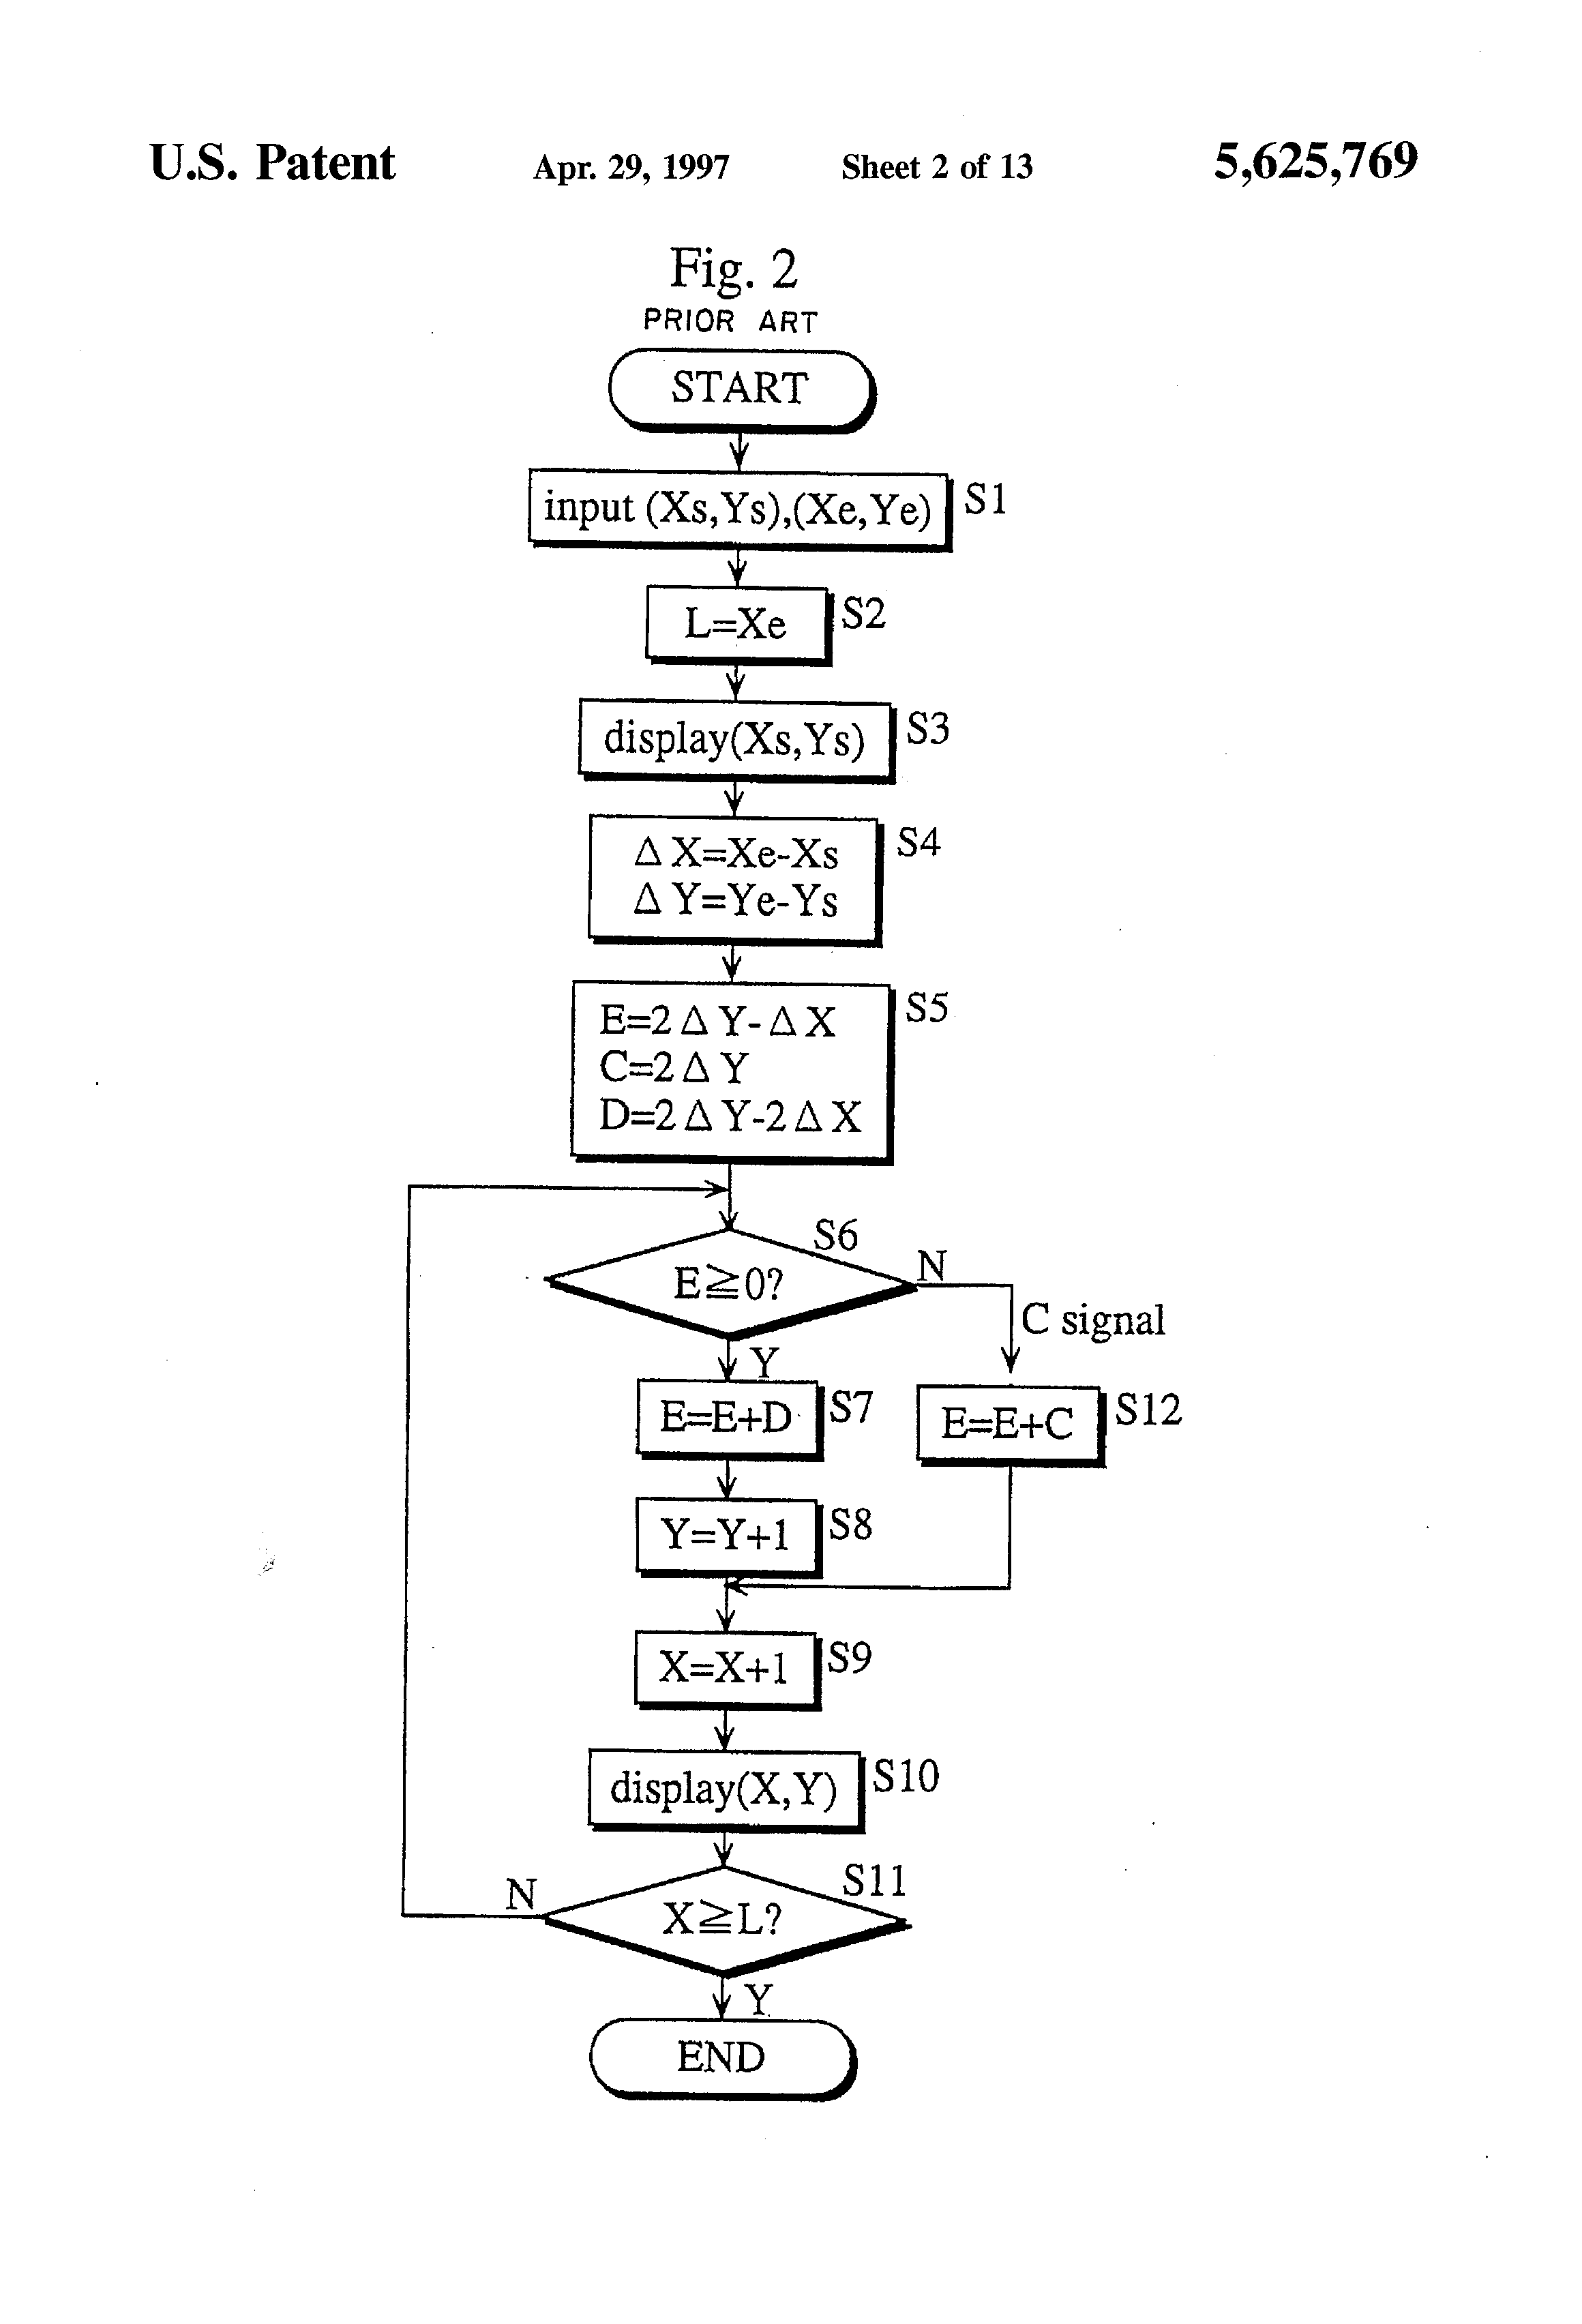 Dda Line Drawing Algorithm And Program : Patent us apparatus for and method of generating